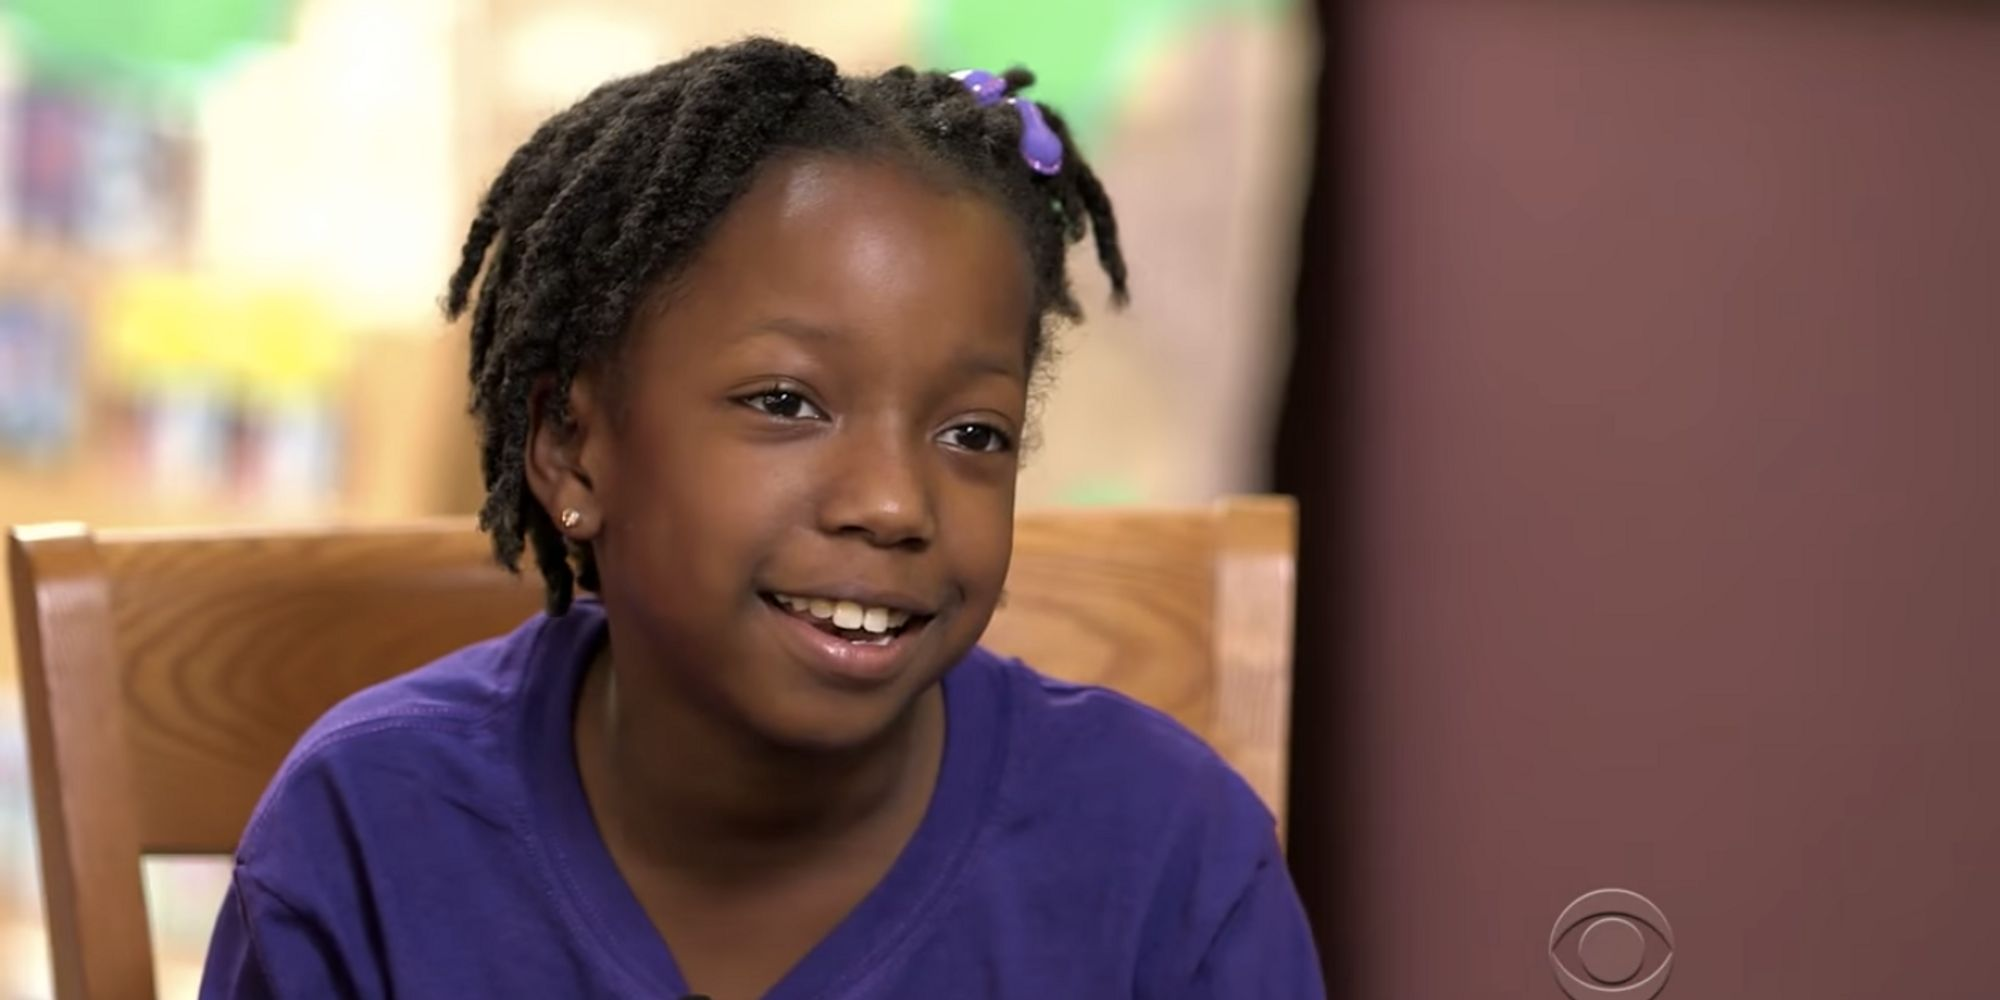 this 8 year old girl wrote a best selling book on caring